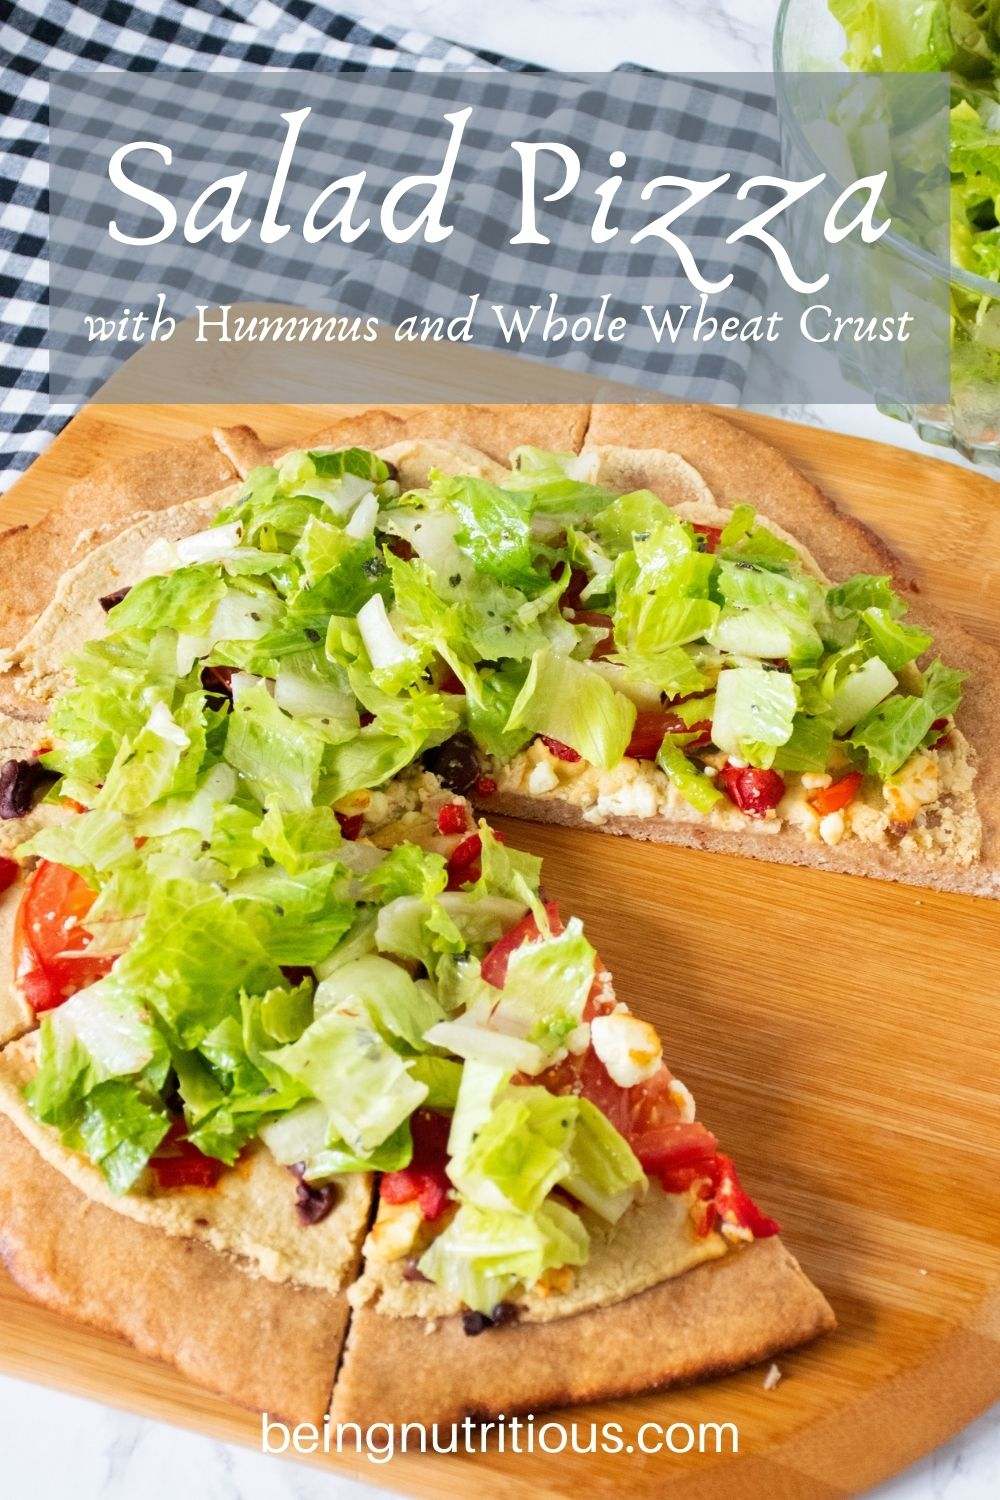 Pizza on a peel, with whole wheat crust, topped with salad. Text overlay: Salad Pizza with Hummus and Whole Wheat Crust.